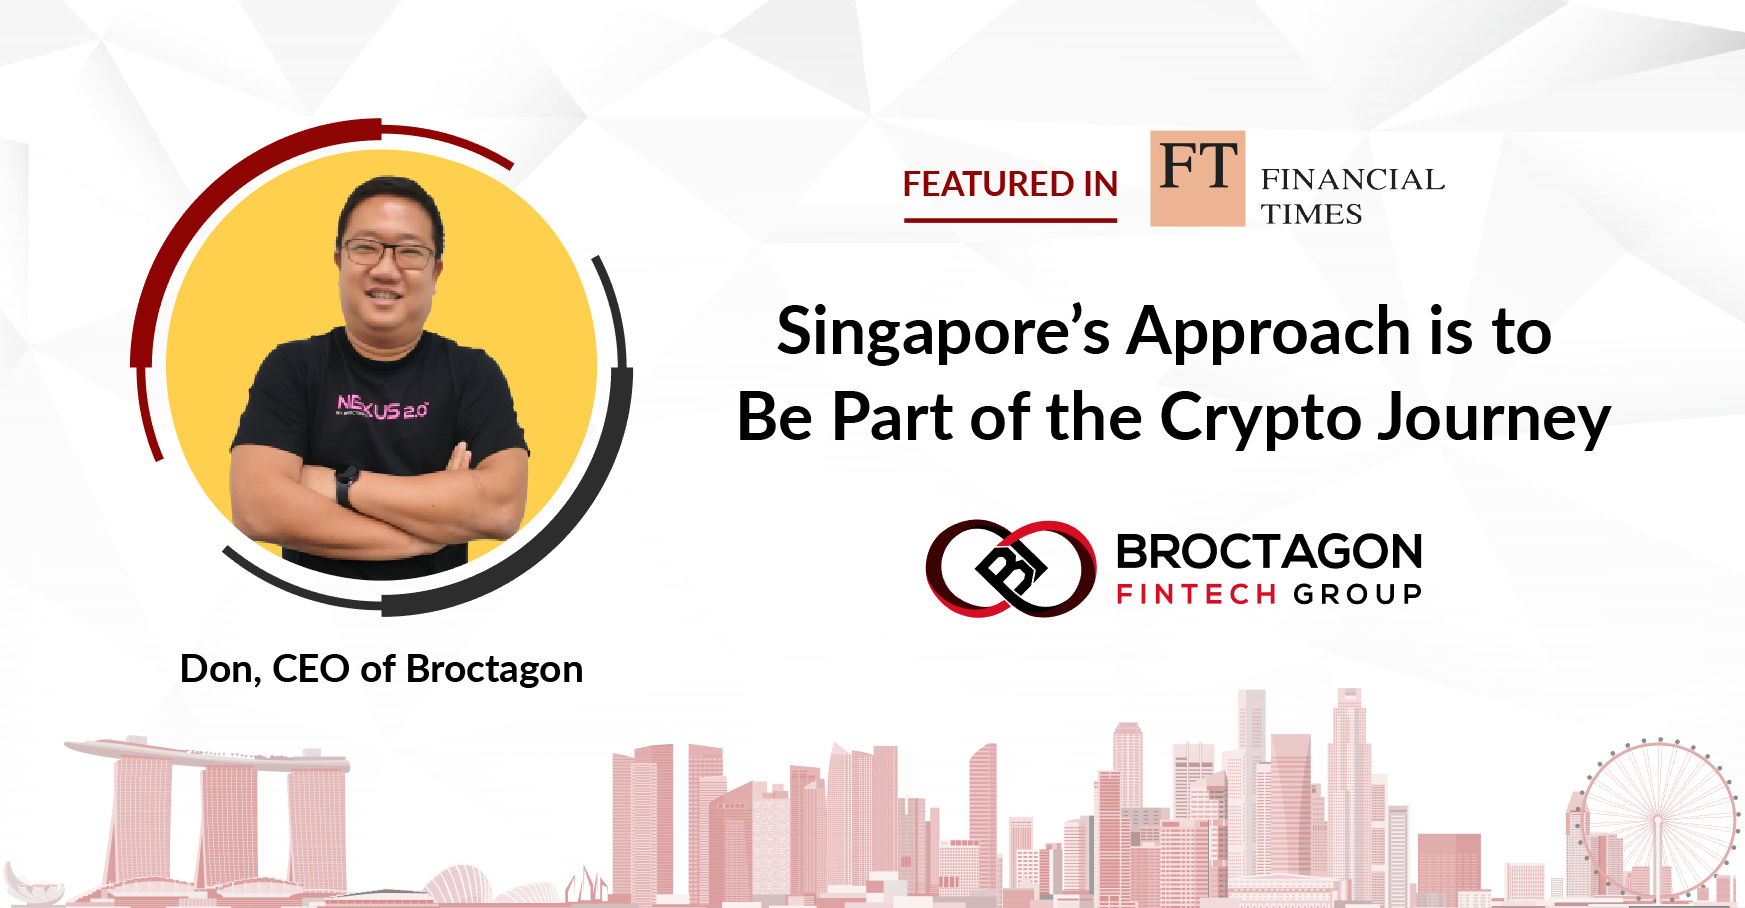 Singapore's approach is to be part of the crypto journey